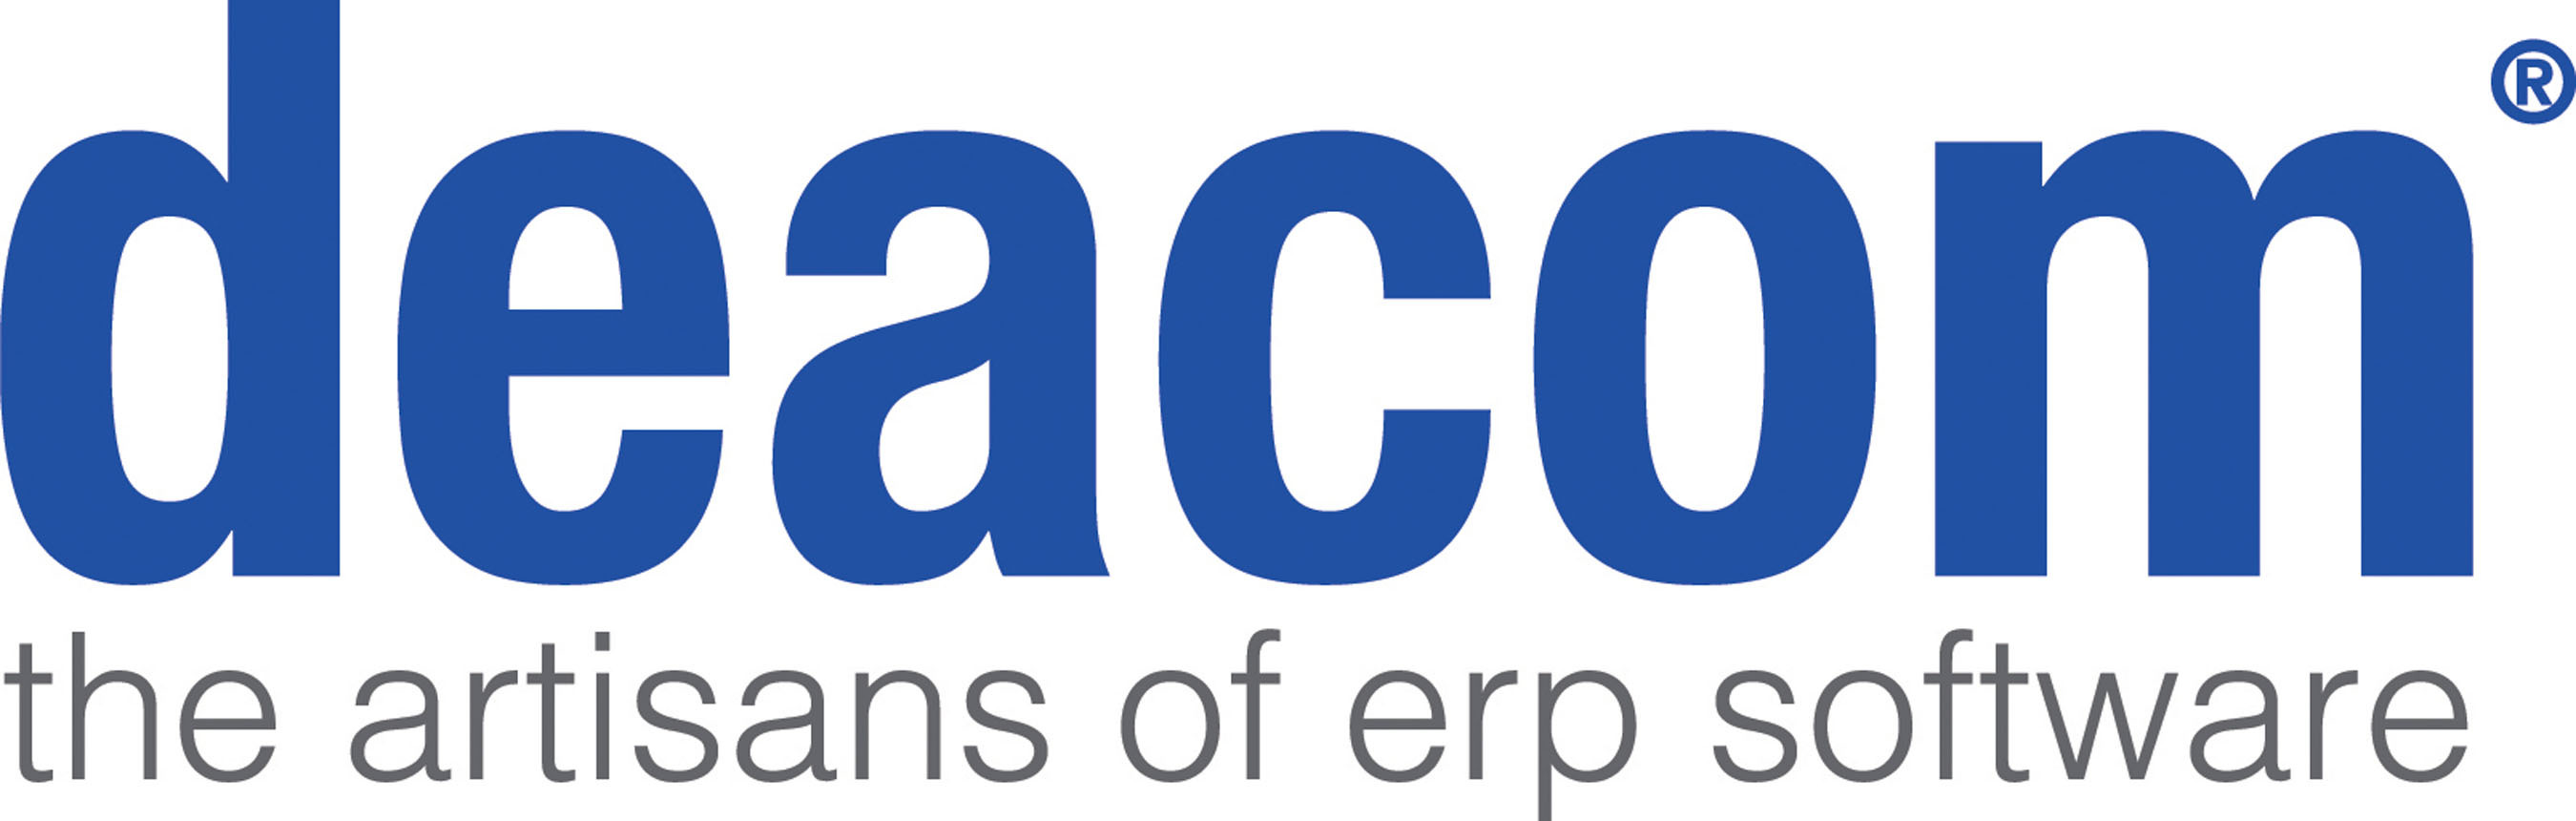 Deacom, Inc. is the producer of DEACOM, a complete Enterprise Resource Planning (ERP) system for process manufacturers with difficult-to-handle requirements. The DEACOM System seamlessly links all departments within a manufacturing company, providing a comprehensive view of the entire operation. By making complex issues simple, Deacom helps streamline manufacturing business processes to maximize productivity and profitability.